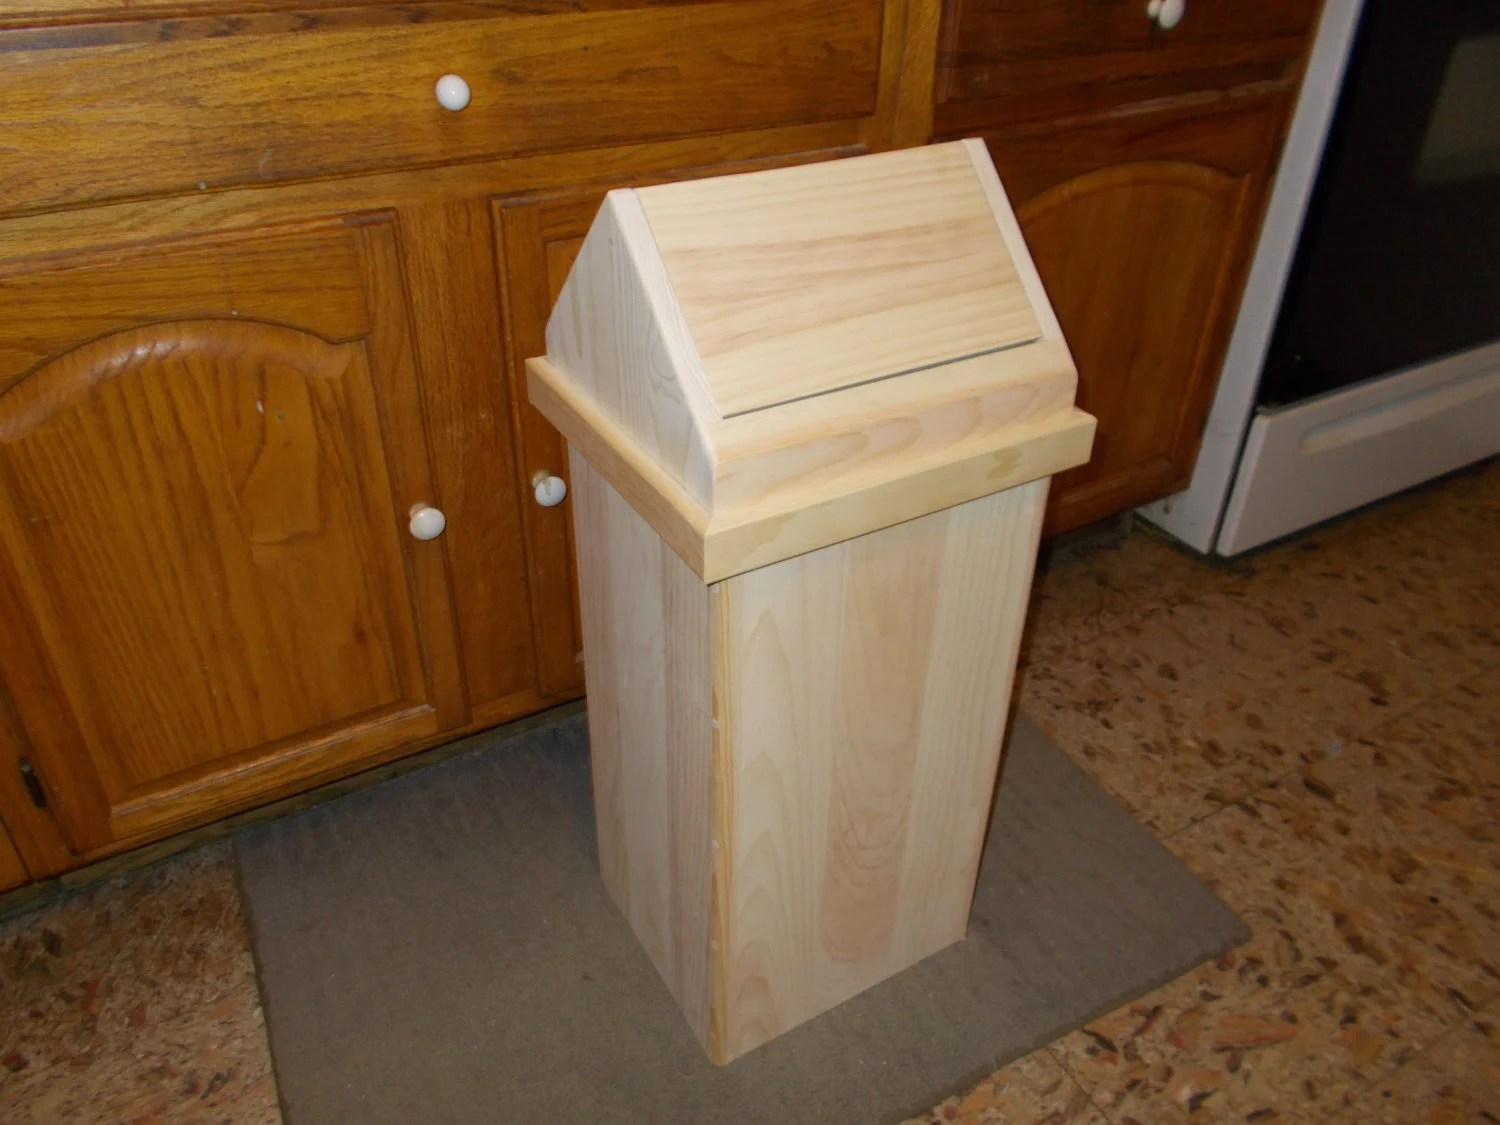 Wooden Kitchen Trash Containers Handcrafted Wood 13 Gallon Kitchen Trash Can Unfinished Pine